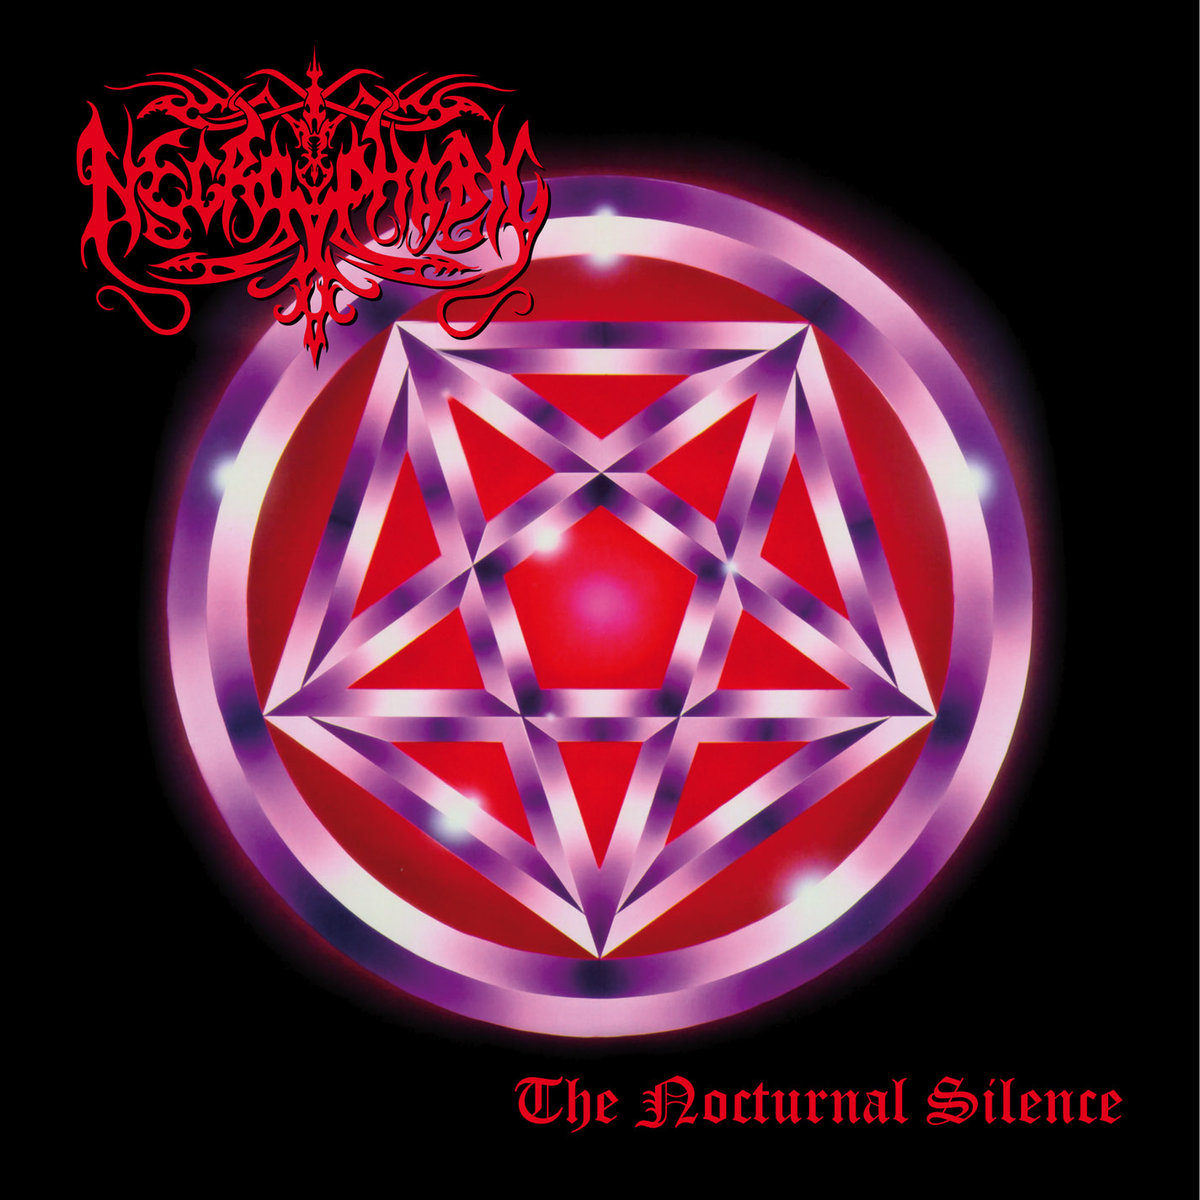 NECROPHOBIC, THE NOCTURNAL SILENCE (1993)